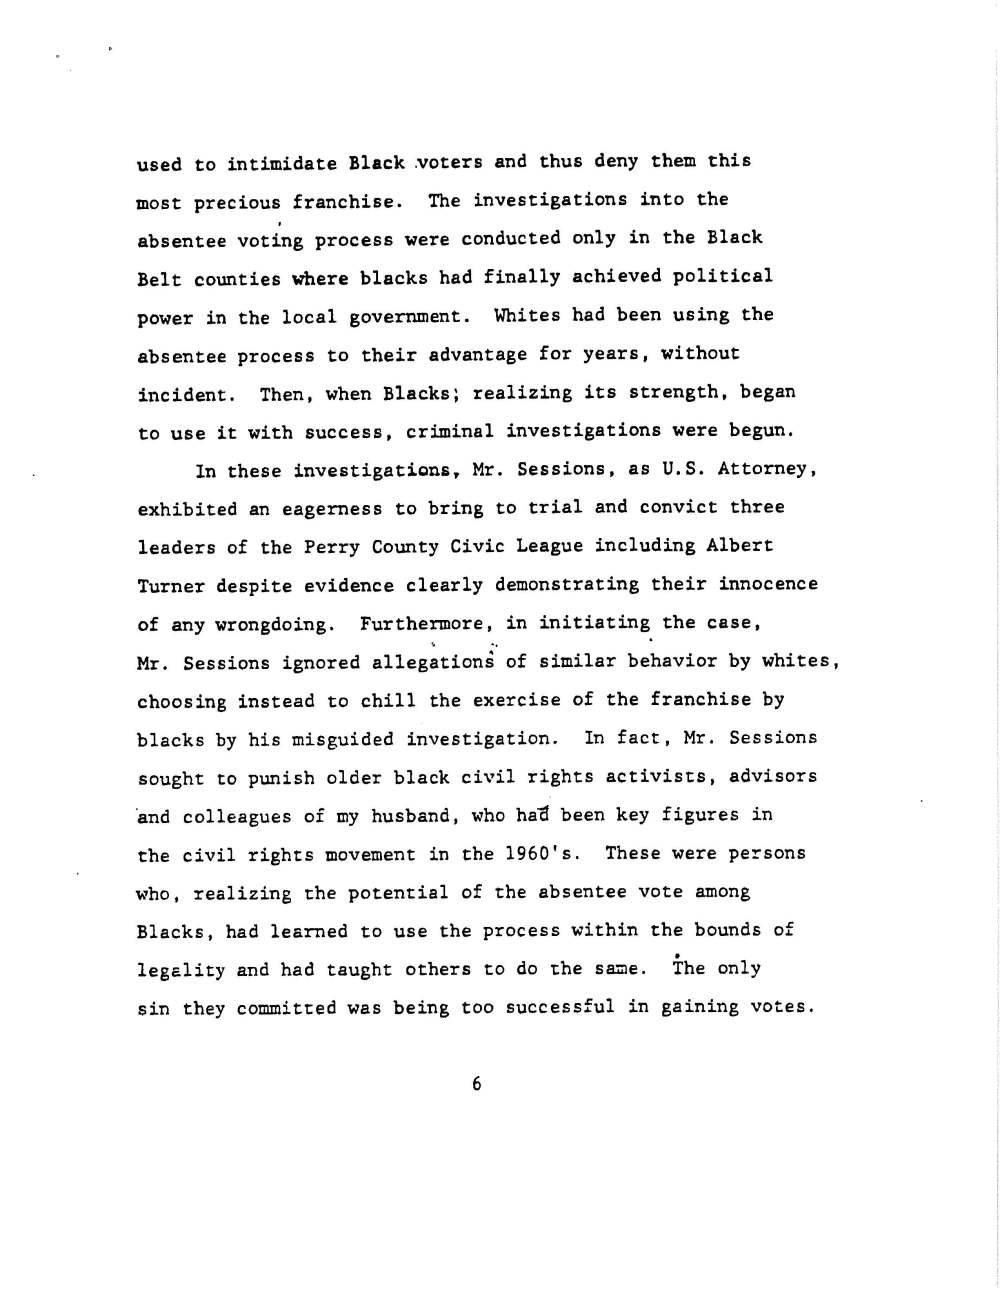 scott-king-1986-letter-and-testimony-signed_page_07